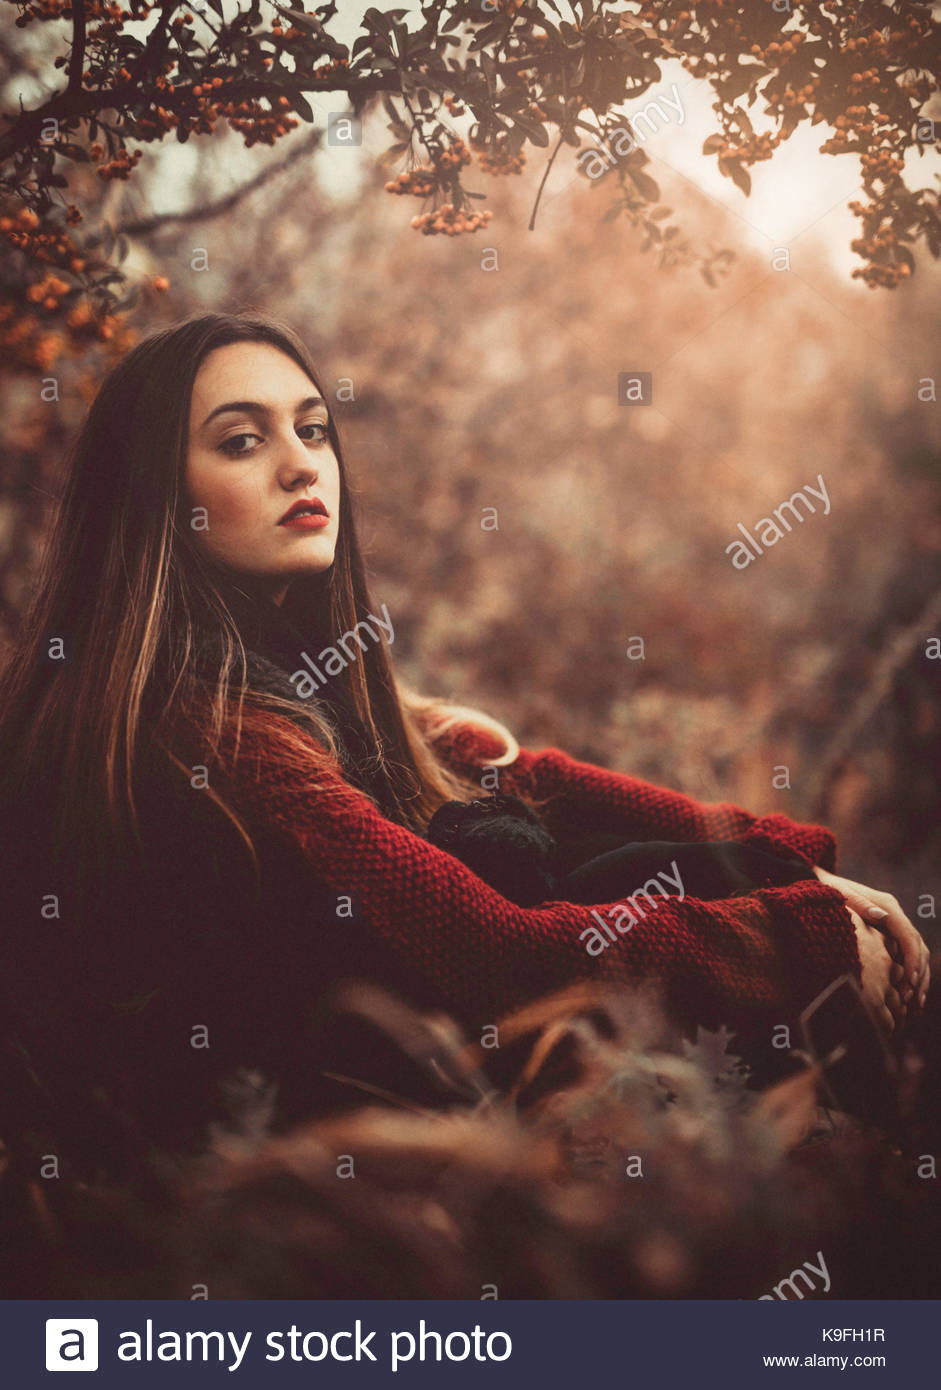 Portrait of a girl in the woods, sitting by a tree, sunset - Stock Image